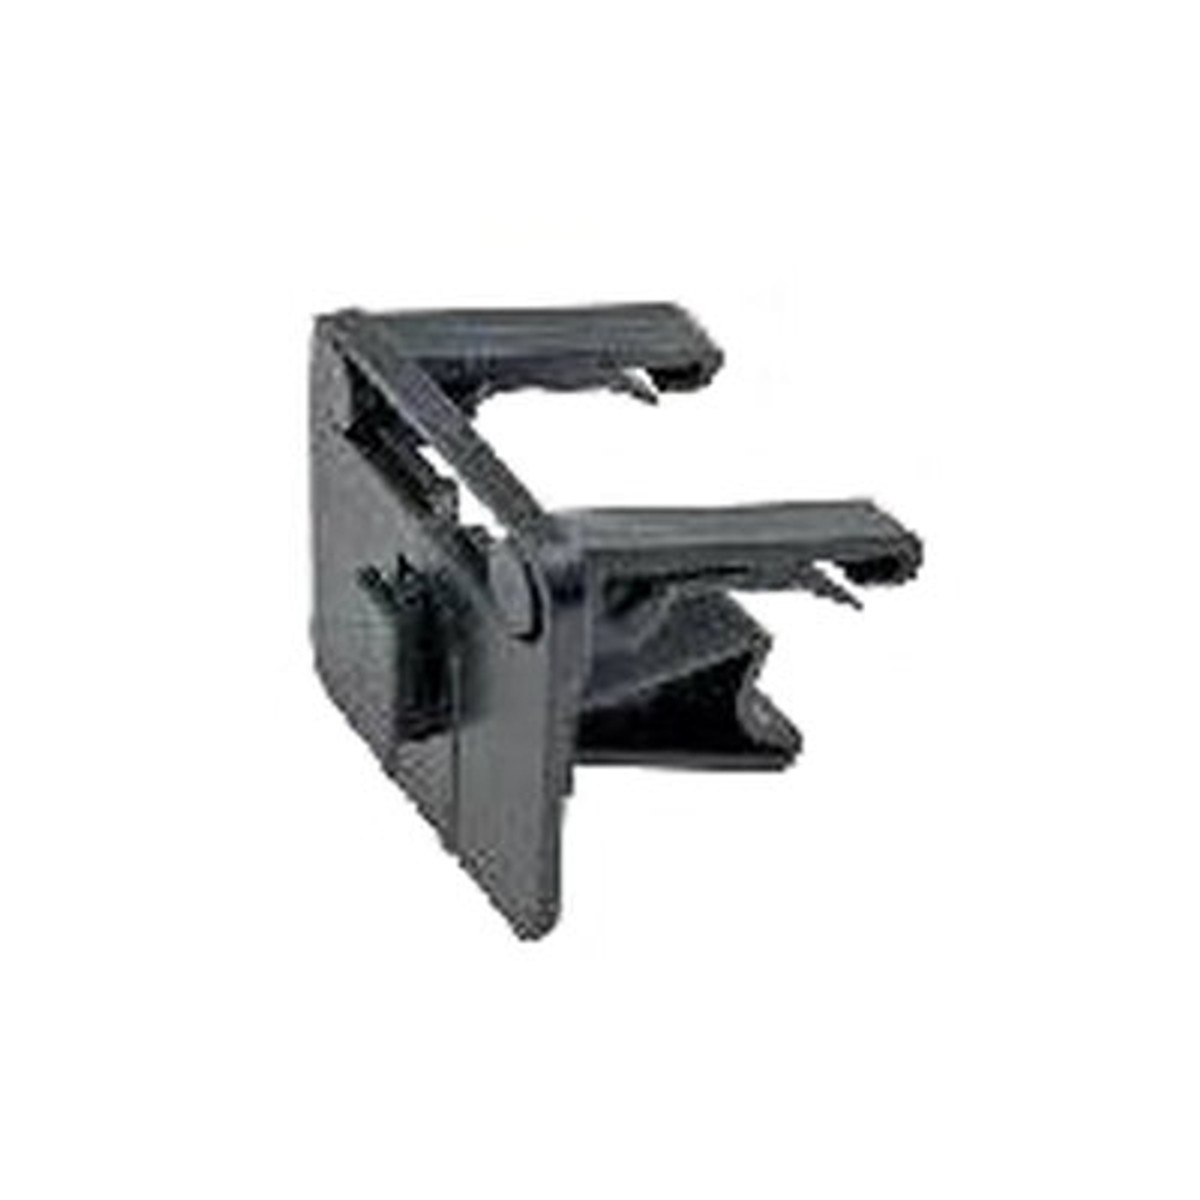 Wilson 901136 Cradle Mounting vent clip w/2 clips, main image